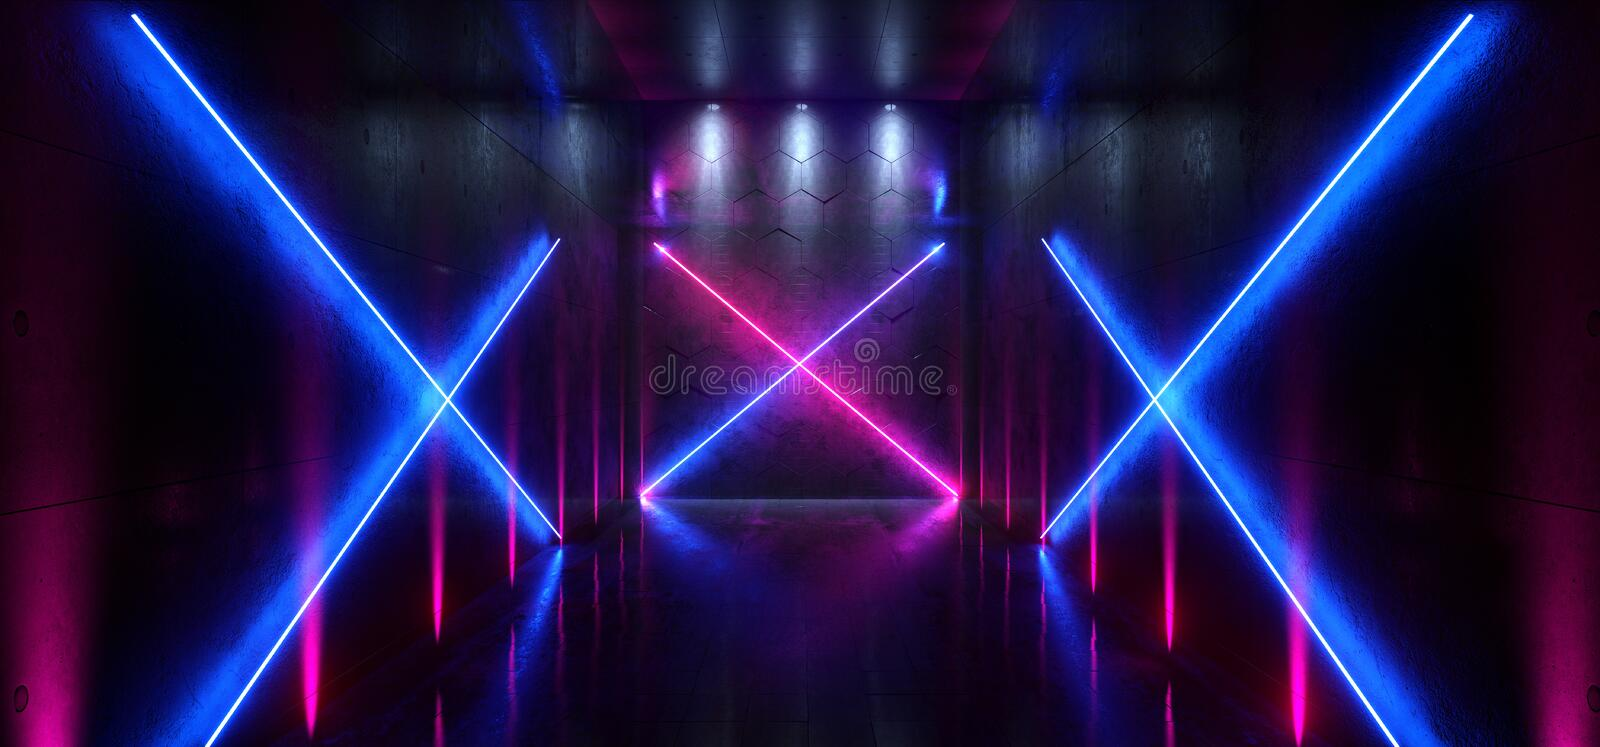 Sci Fi Futuristic Laser Hall Neon Tunnel Path Track Gate Entrance Spotlights Glowing Purple Blue Vibrant Colors X Shaped Gallery royalty free illustration